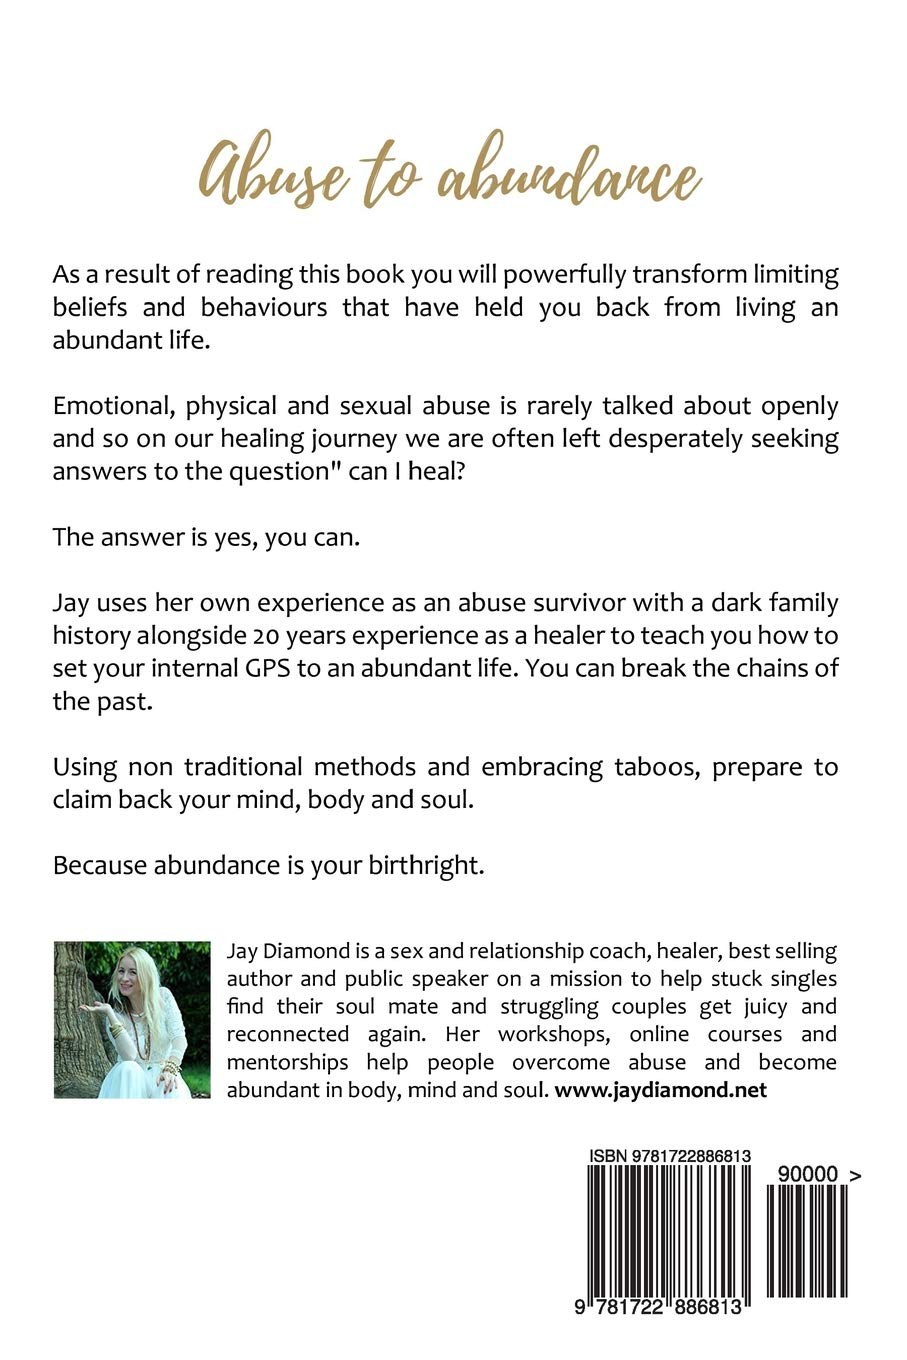 Amazon com: Abuse to Abundance: How to claim back your mind, body